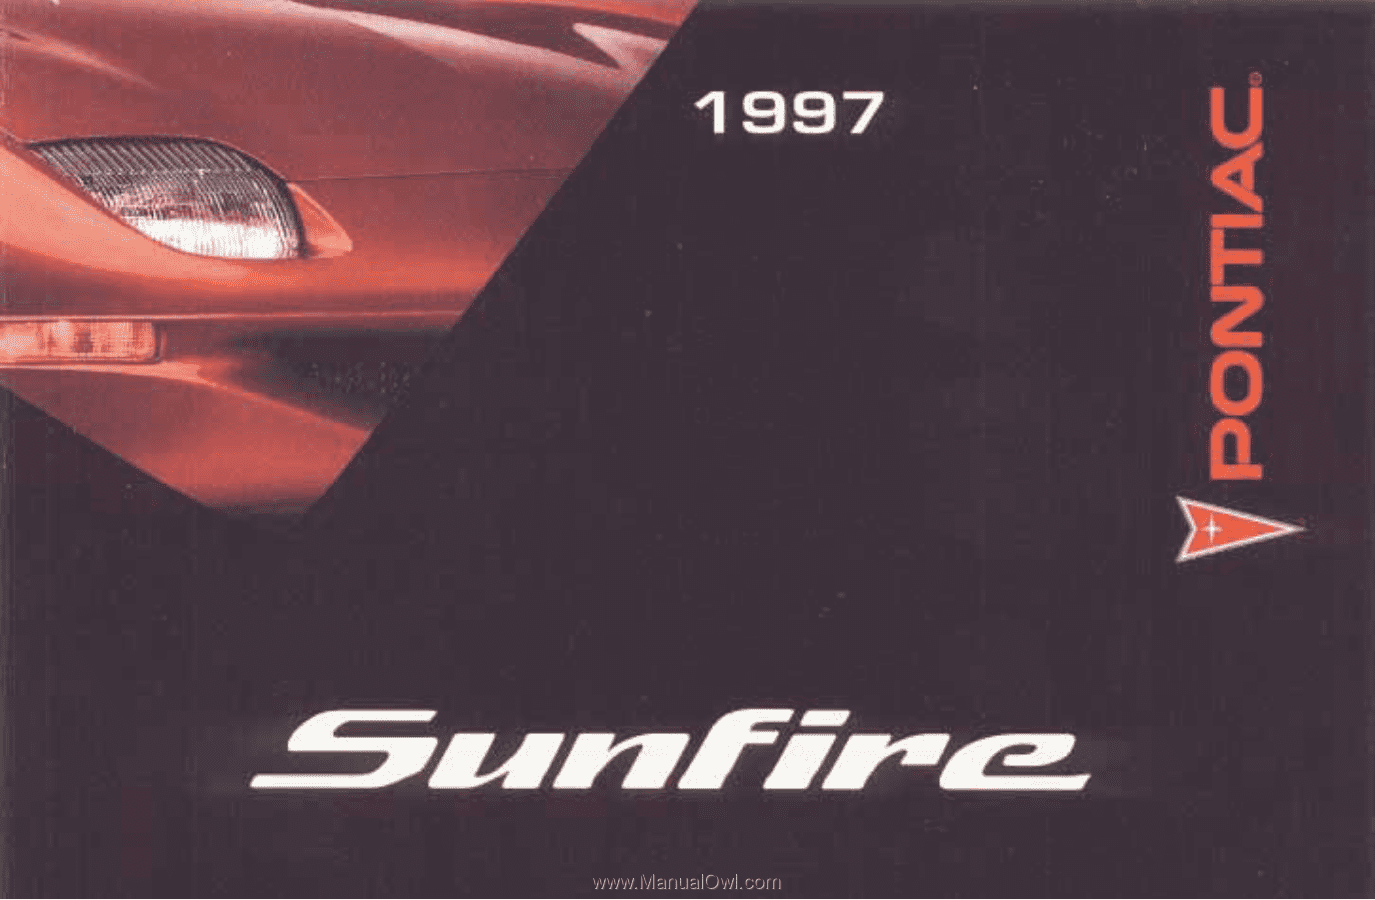 The. 1997. Pontiac. Sunfire. Owner's. Manual